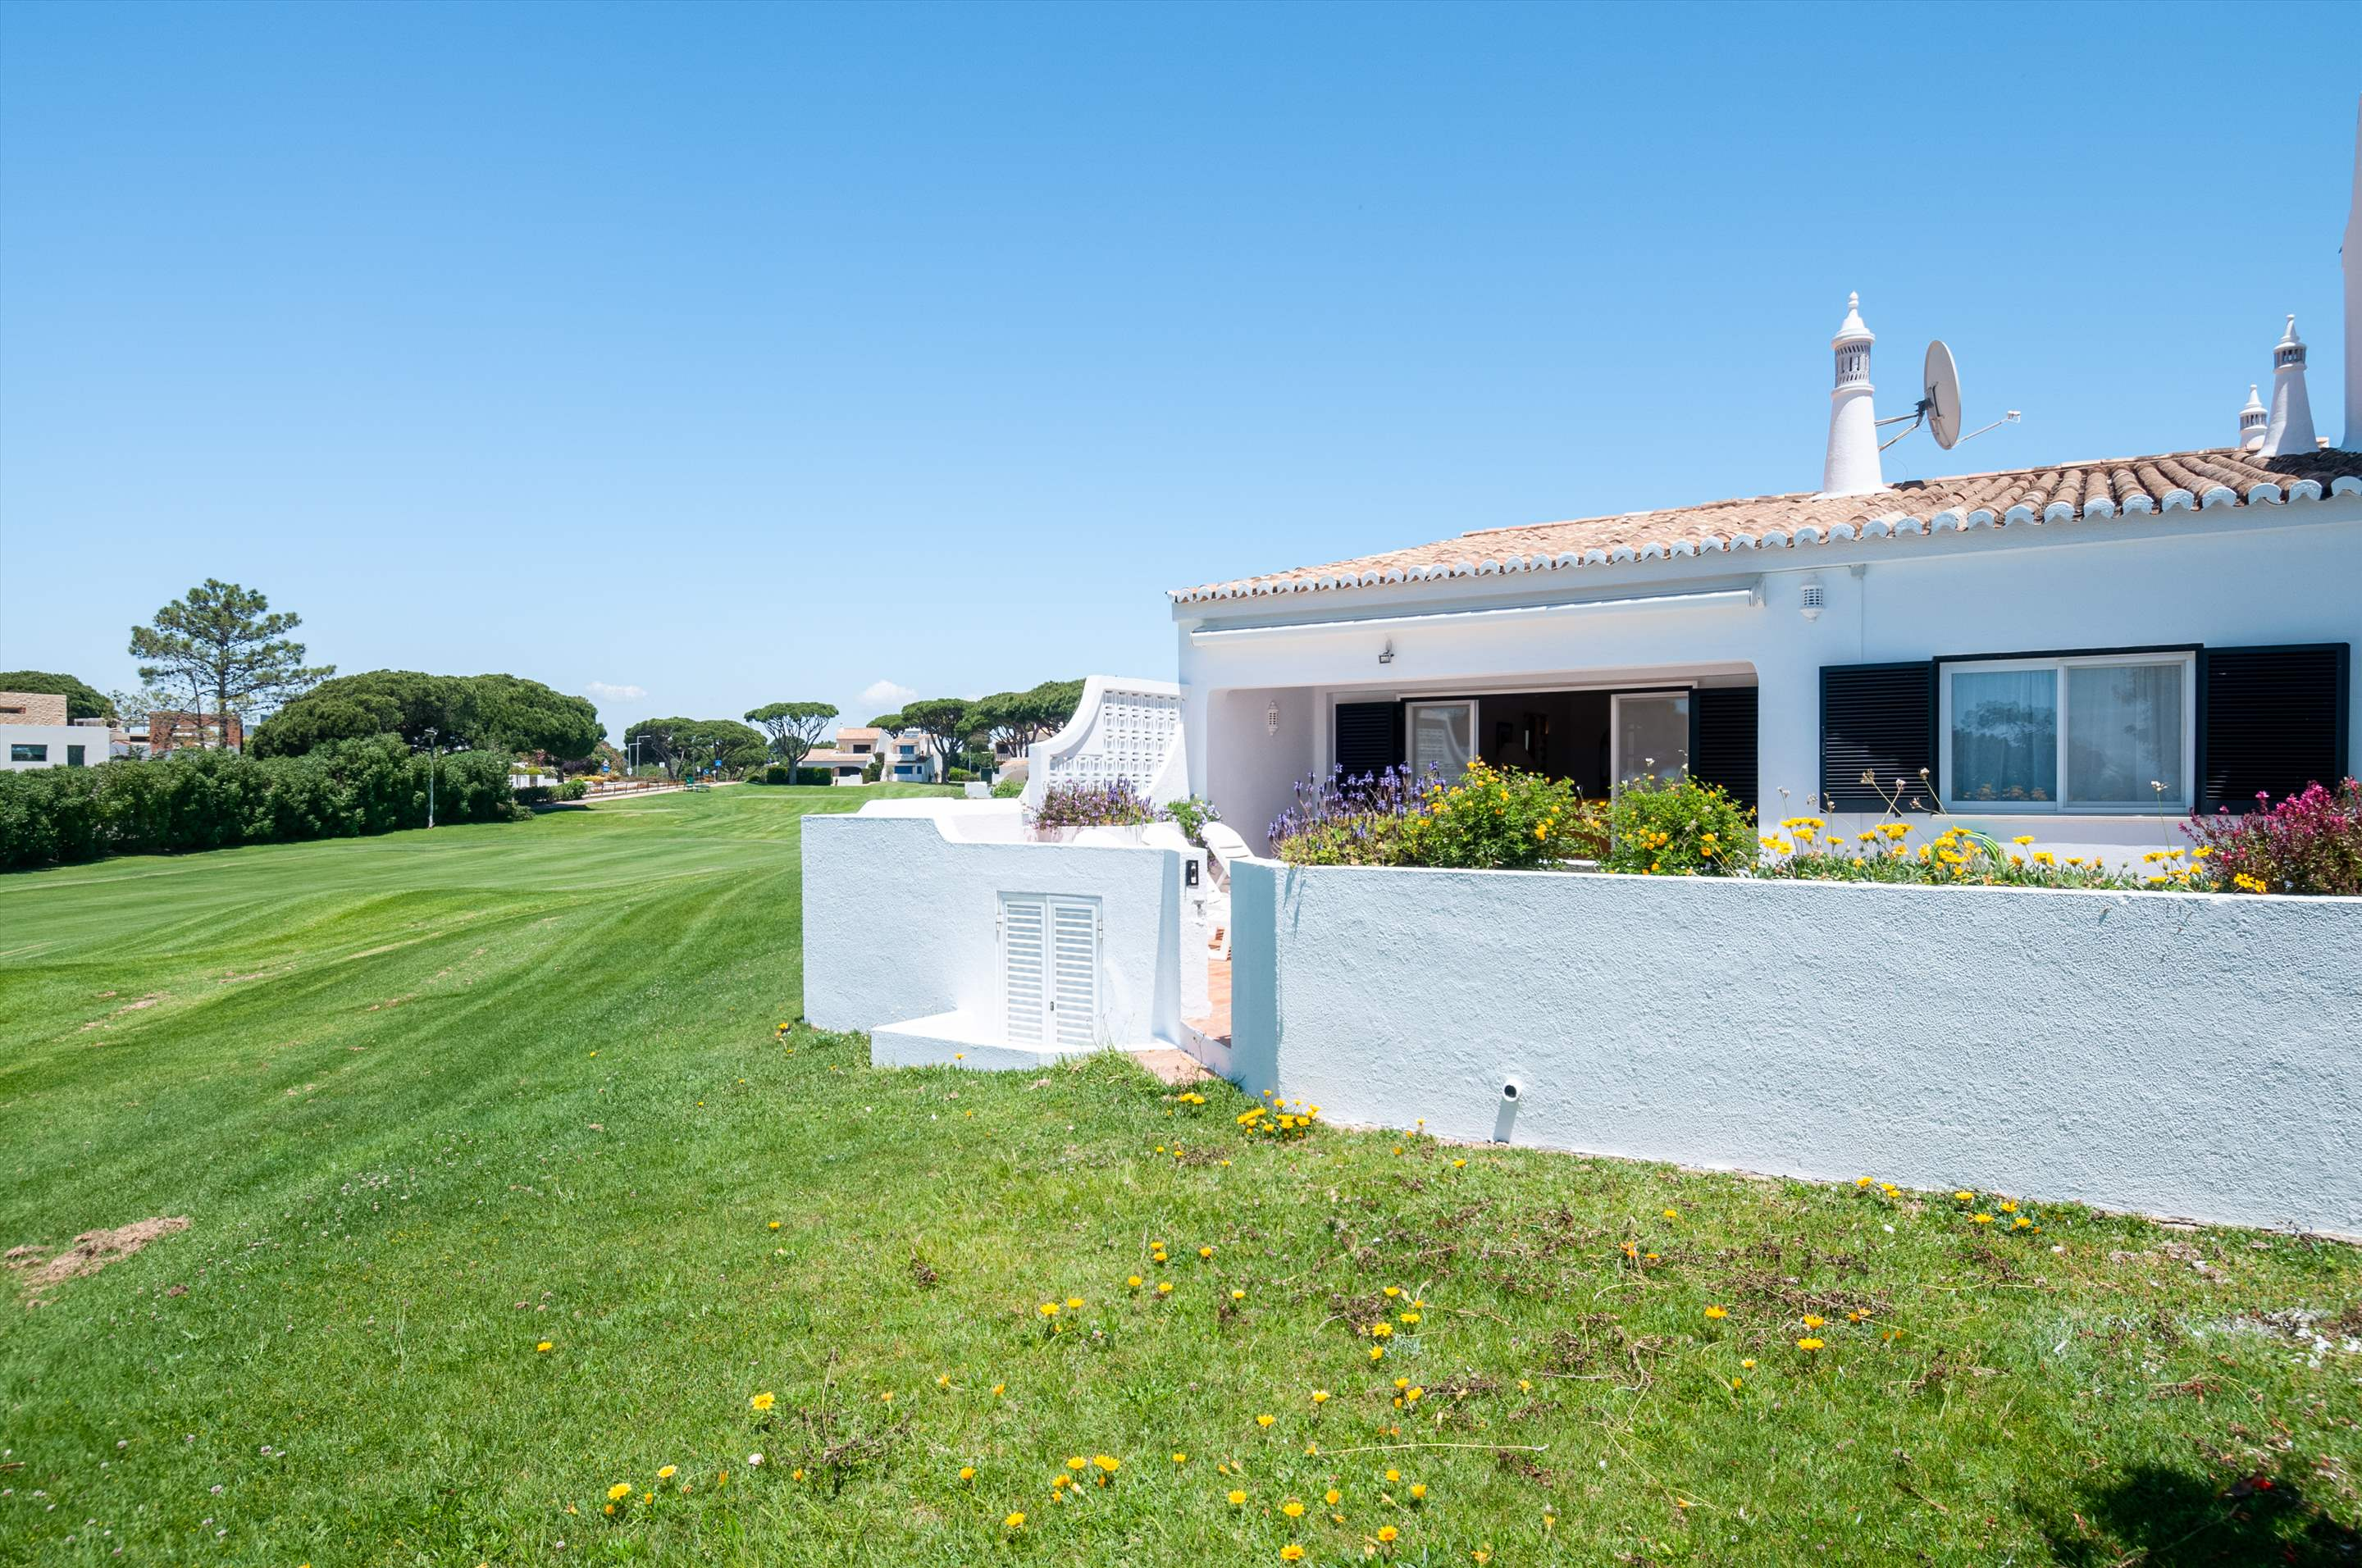 Villa Mimosa 6, 3 bedroom villa in Vale do Lobo, Algarve Photo #16